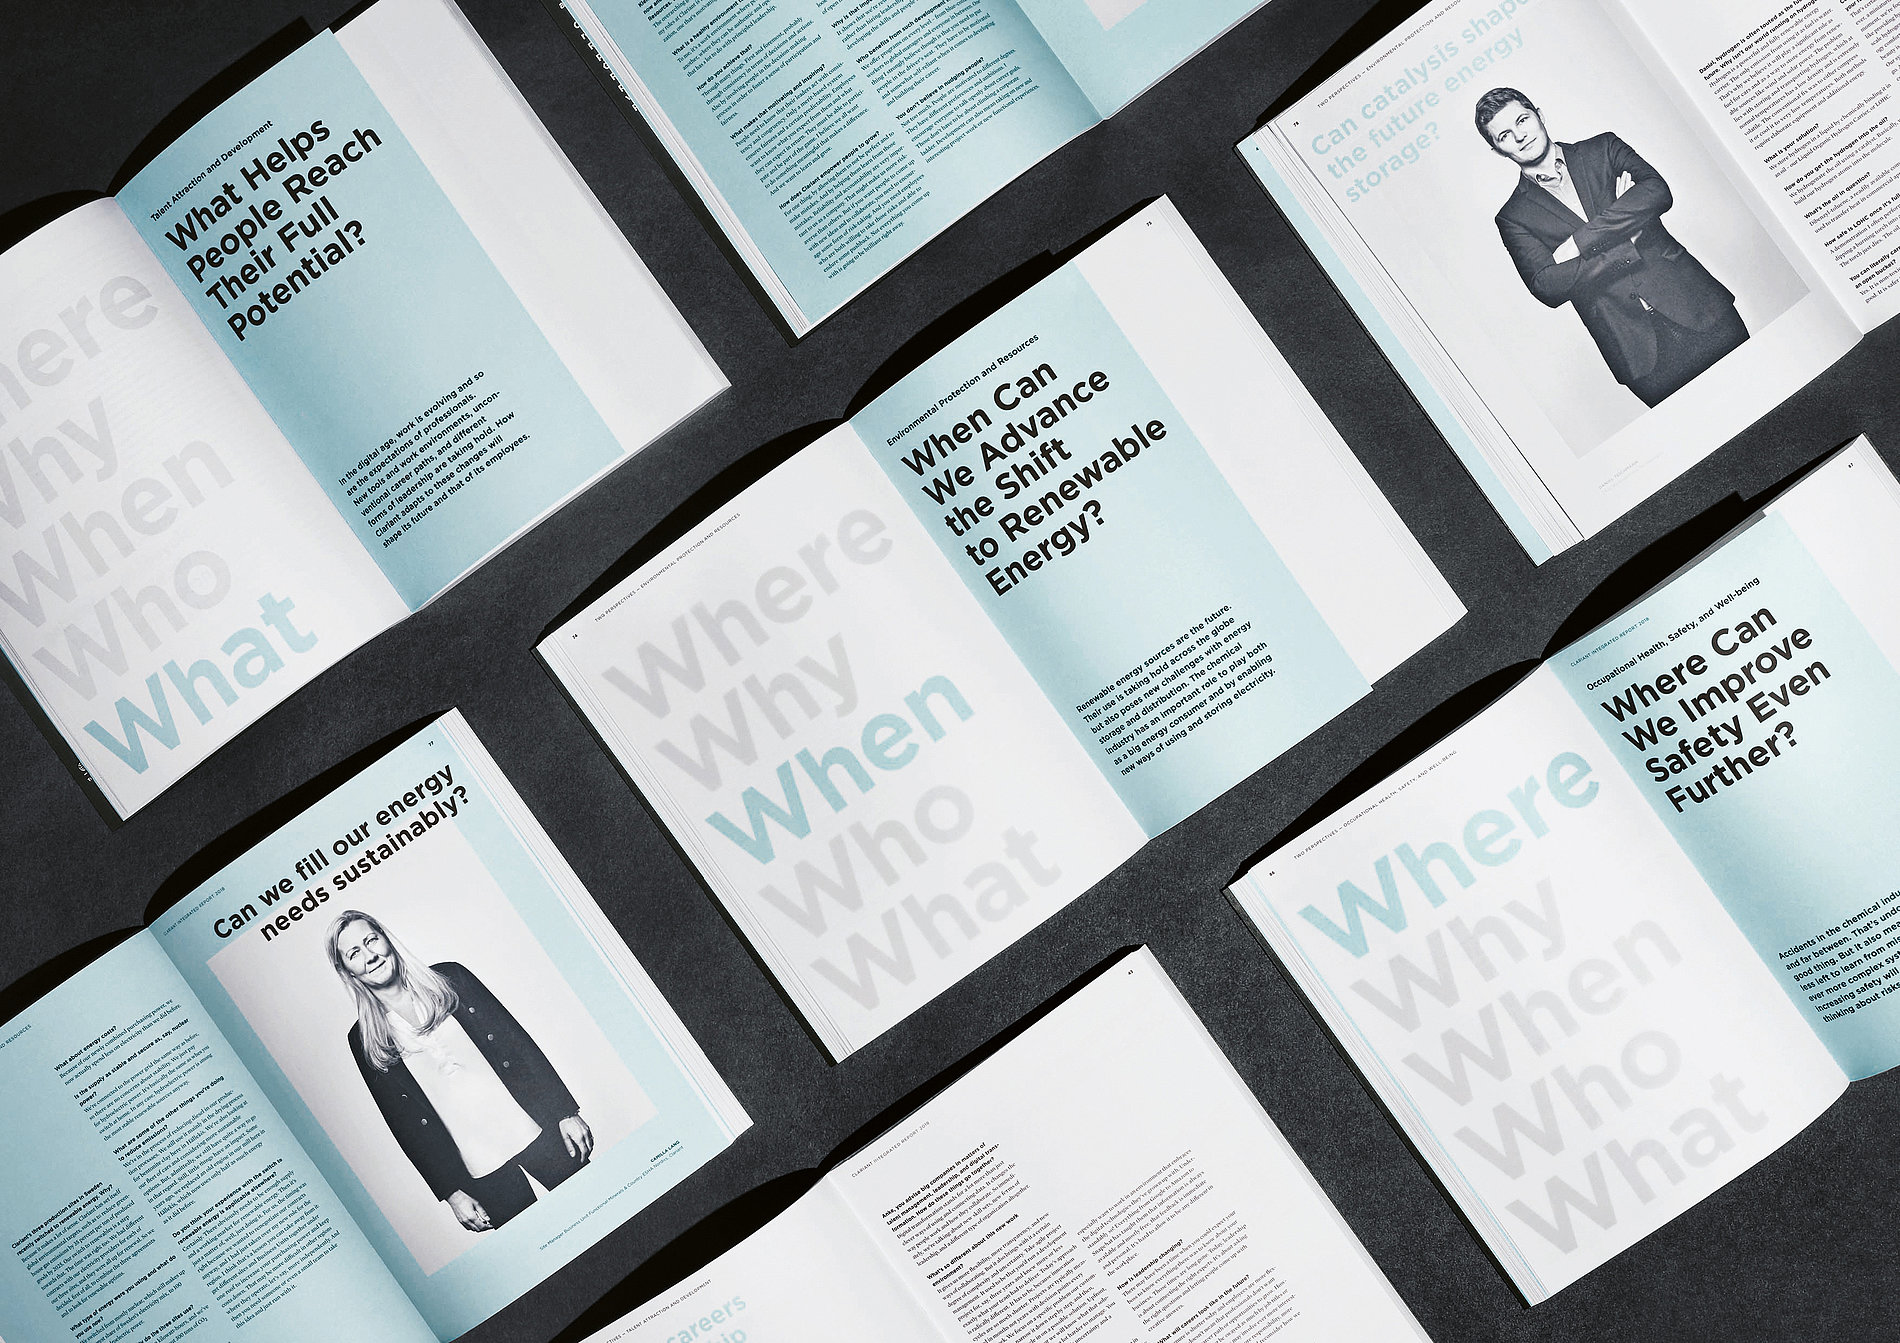 Clariant Integrated Report 2018 | Red Dot Design Award